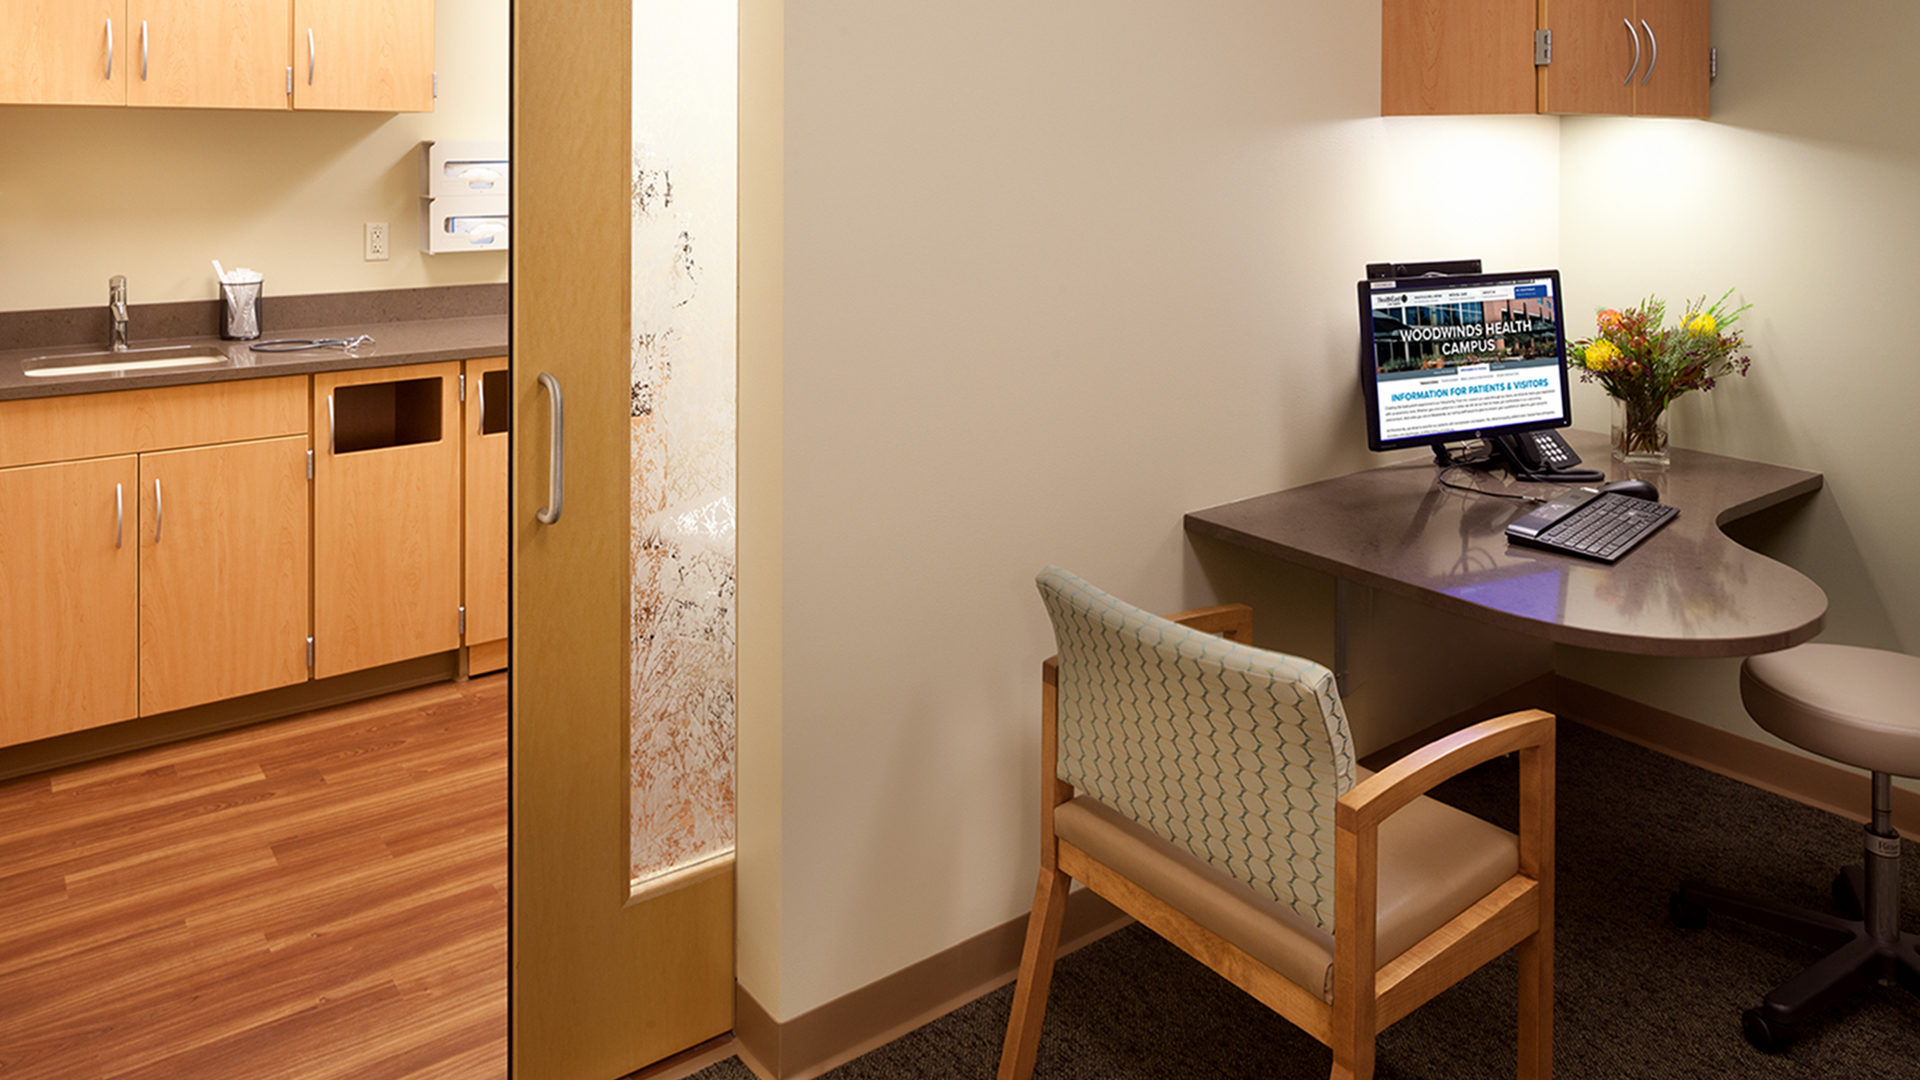 Woodwinds Hospital Cancer Center Woodbury MN Clinic Exam Room